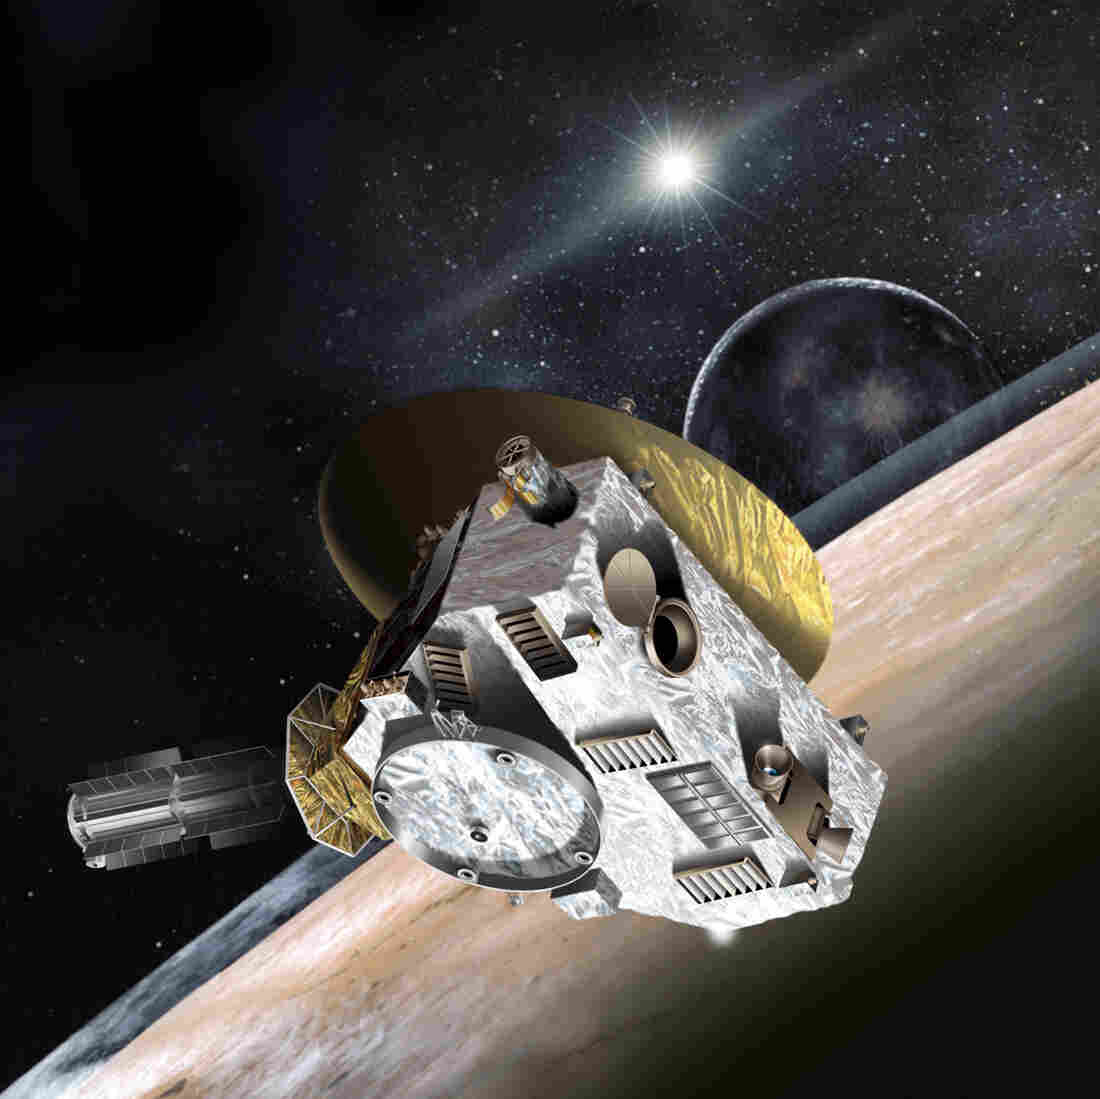 Hubble To Search For Last Stop On Pluto Probe's Itinerary